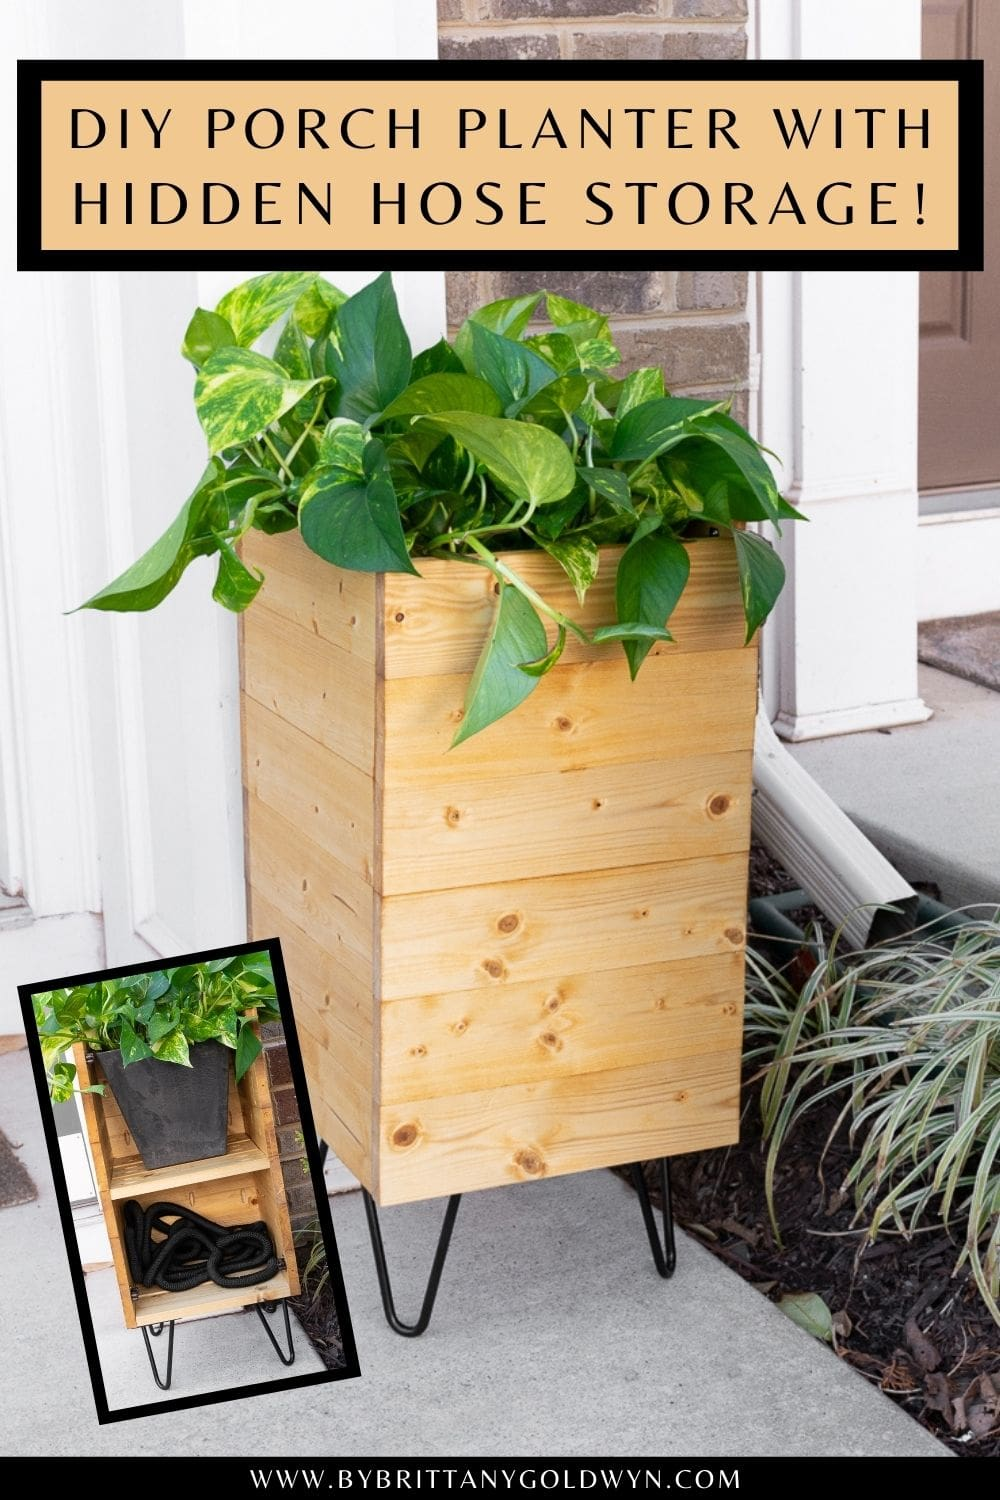 pinnable graphic with photos of a DIY planter with built-in hose storage and text overlay about how to build one